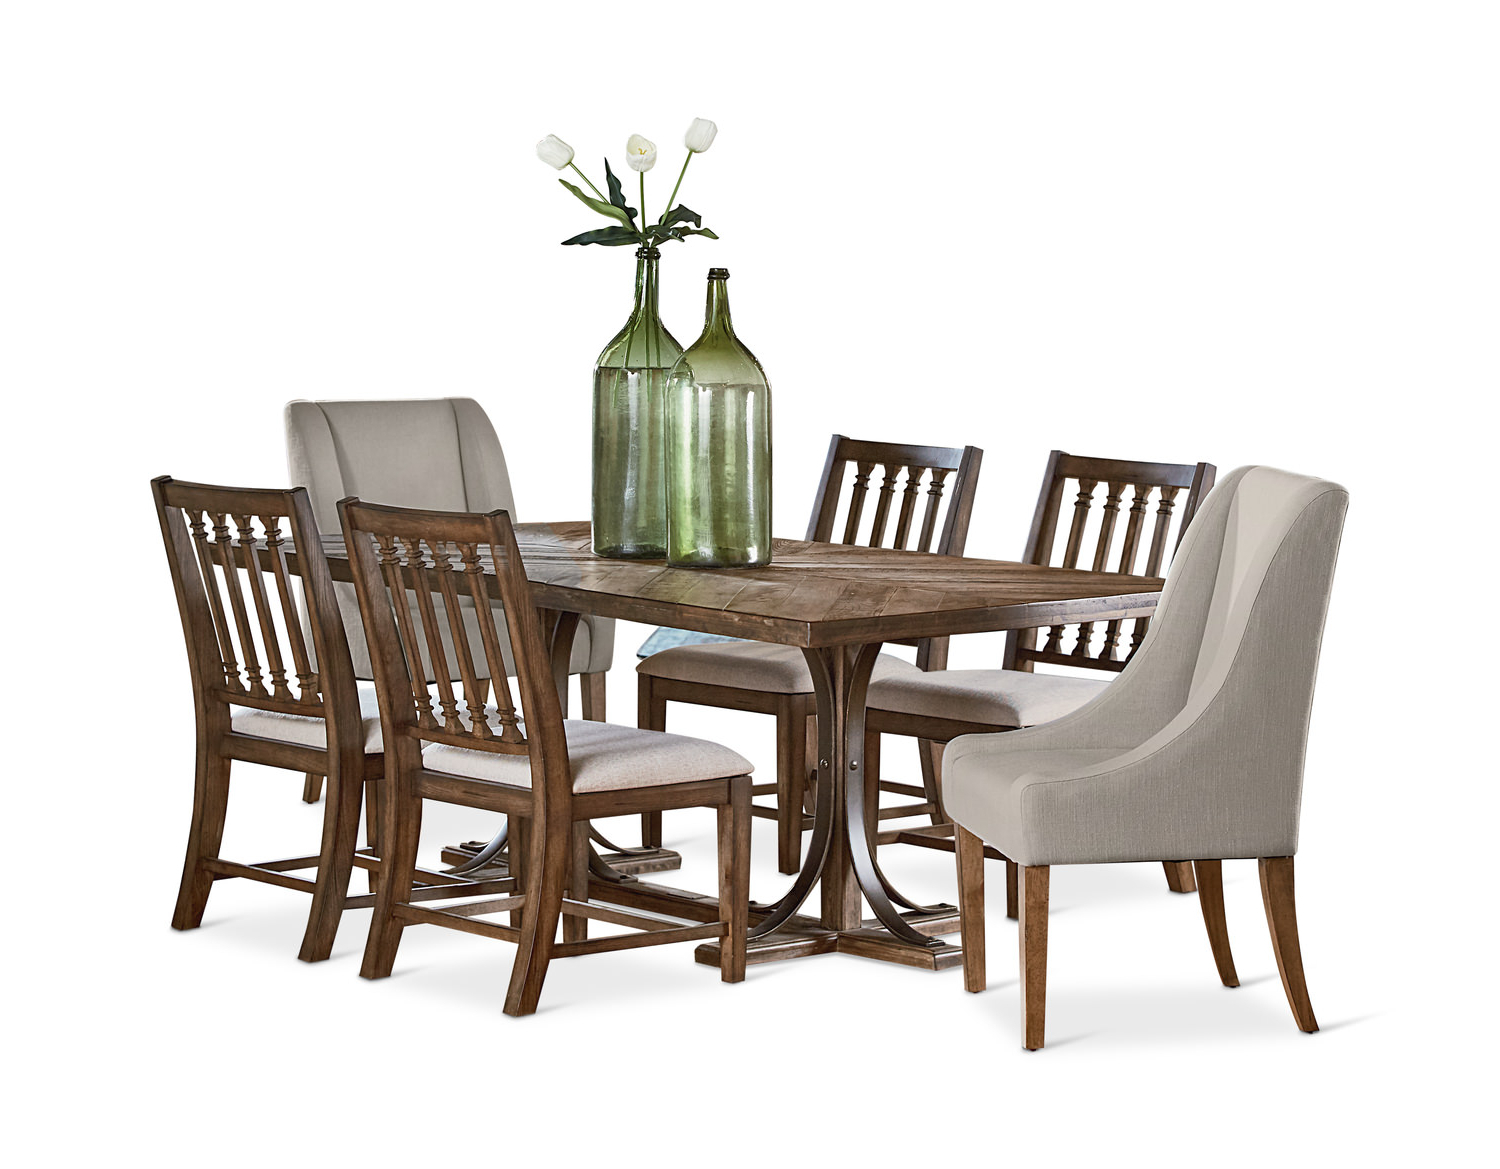 Fashionable Trestle Dining Table With 4 Revival Side And (View 4 of 20)